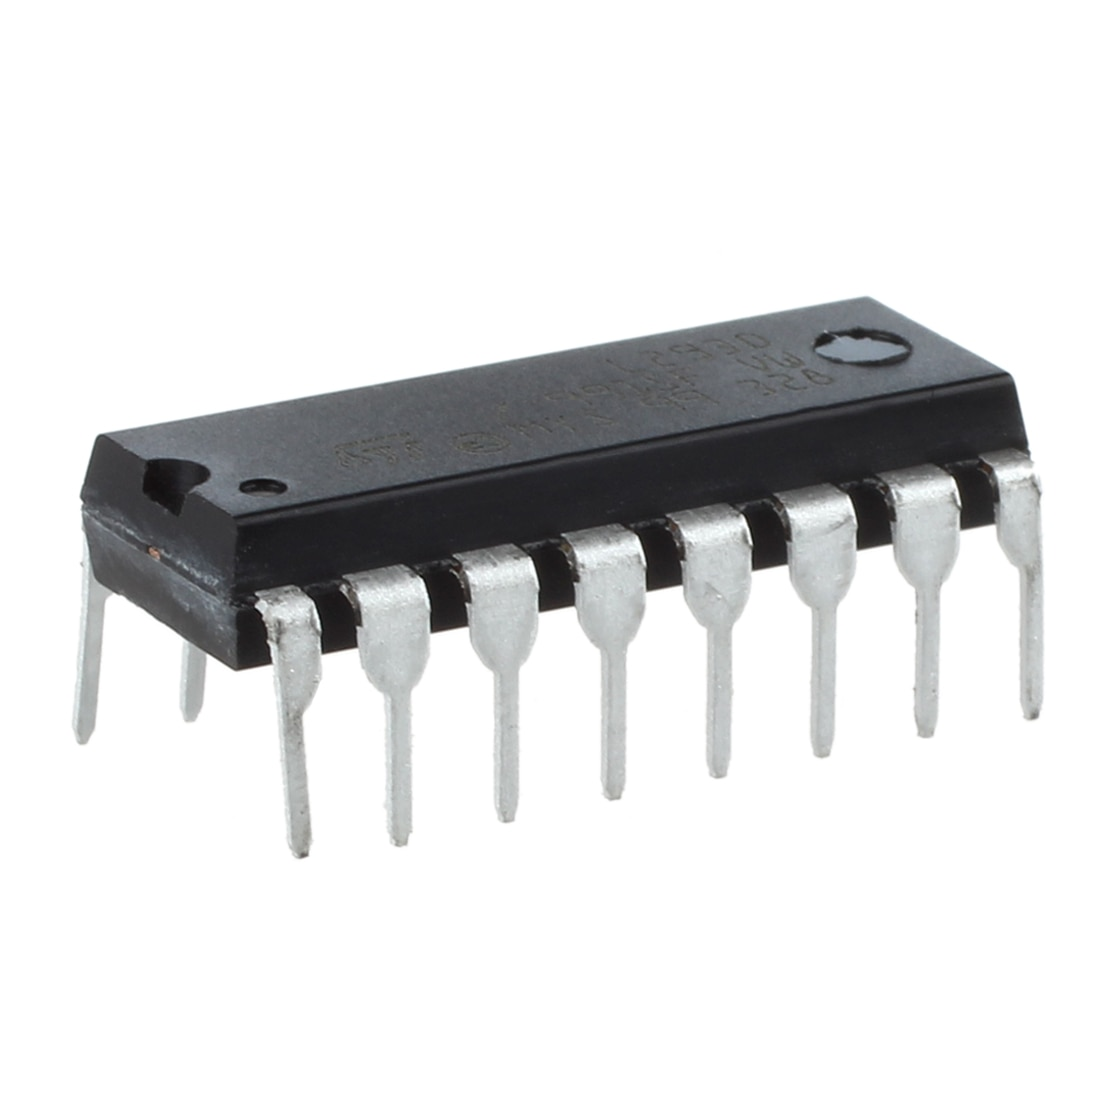 L293D Stepper Motor Driver IC Chip - Stepper Motor and Drivers - Motor and Driver